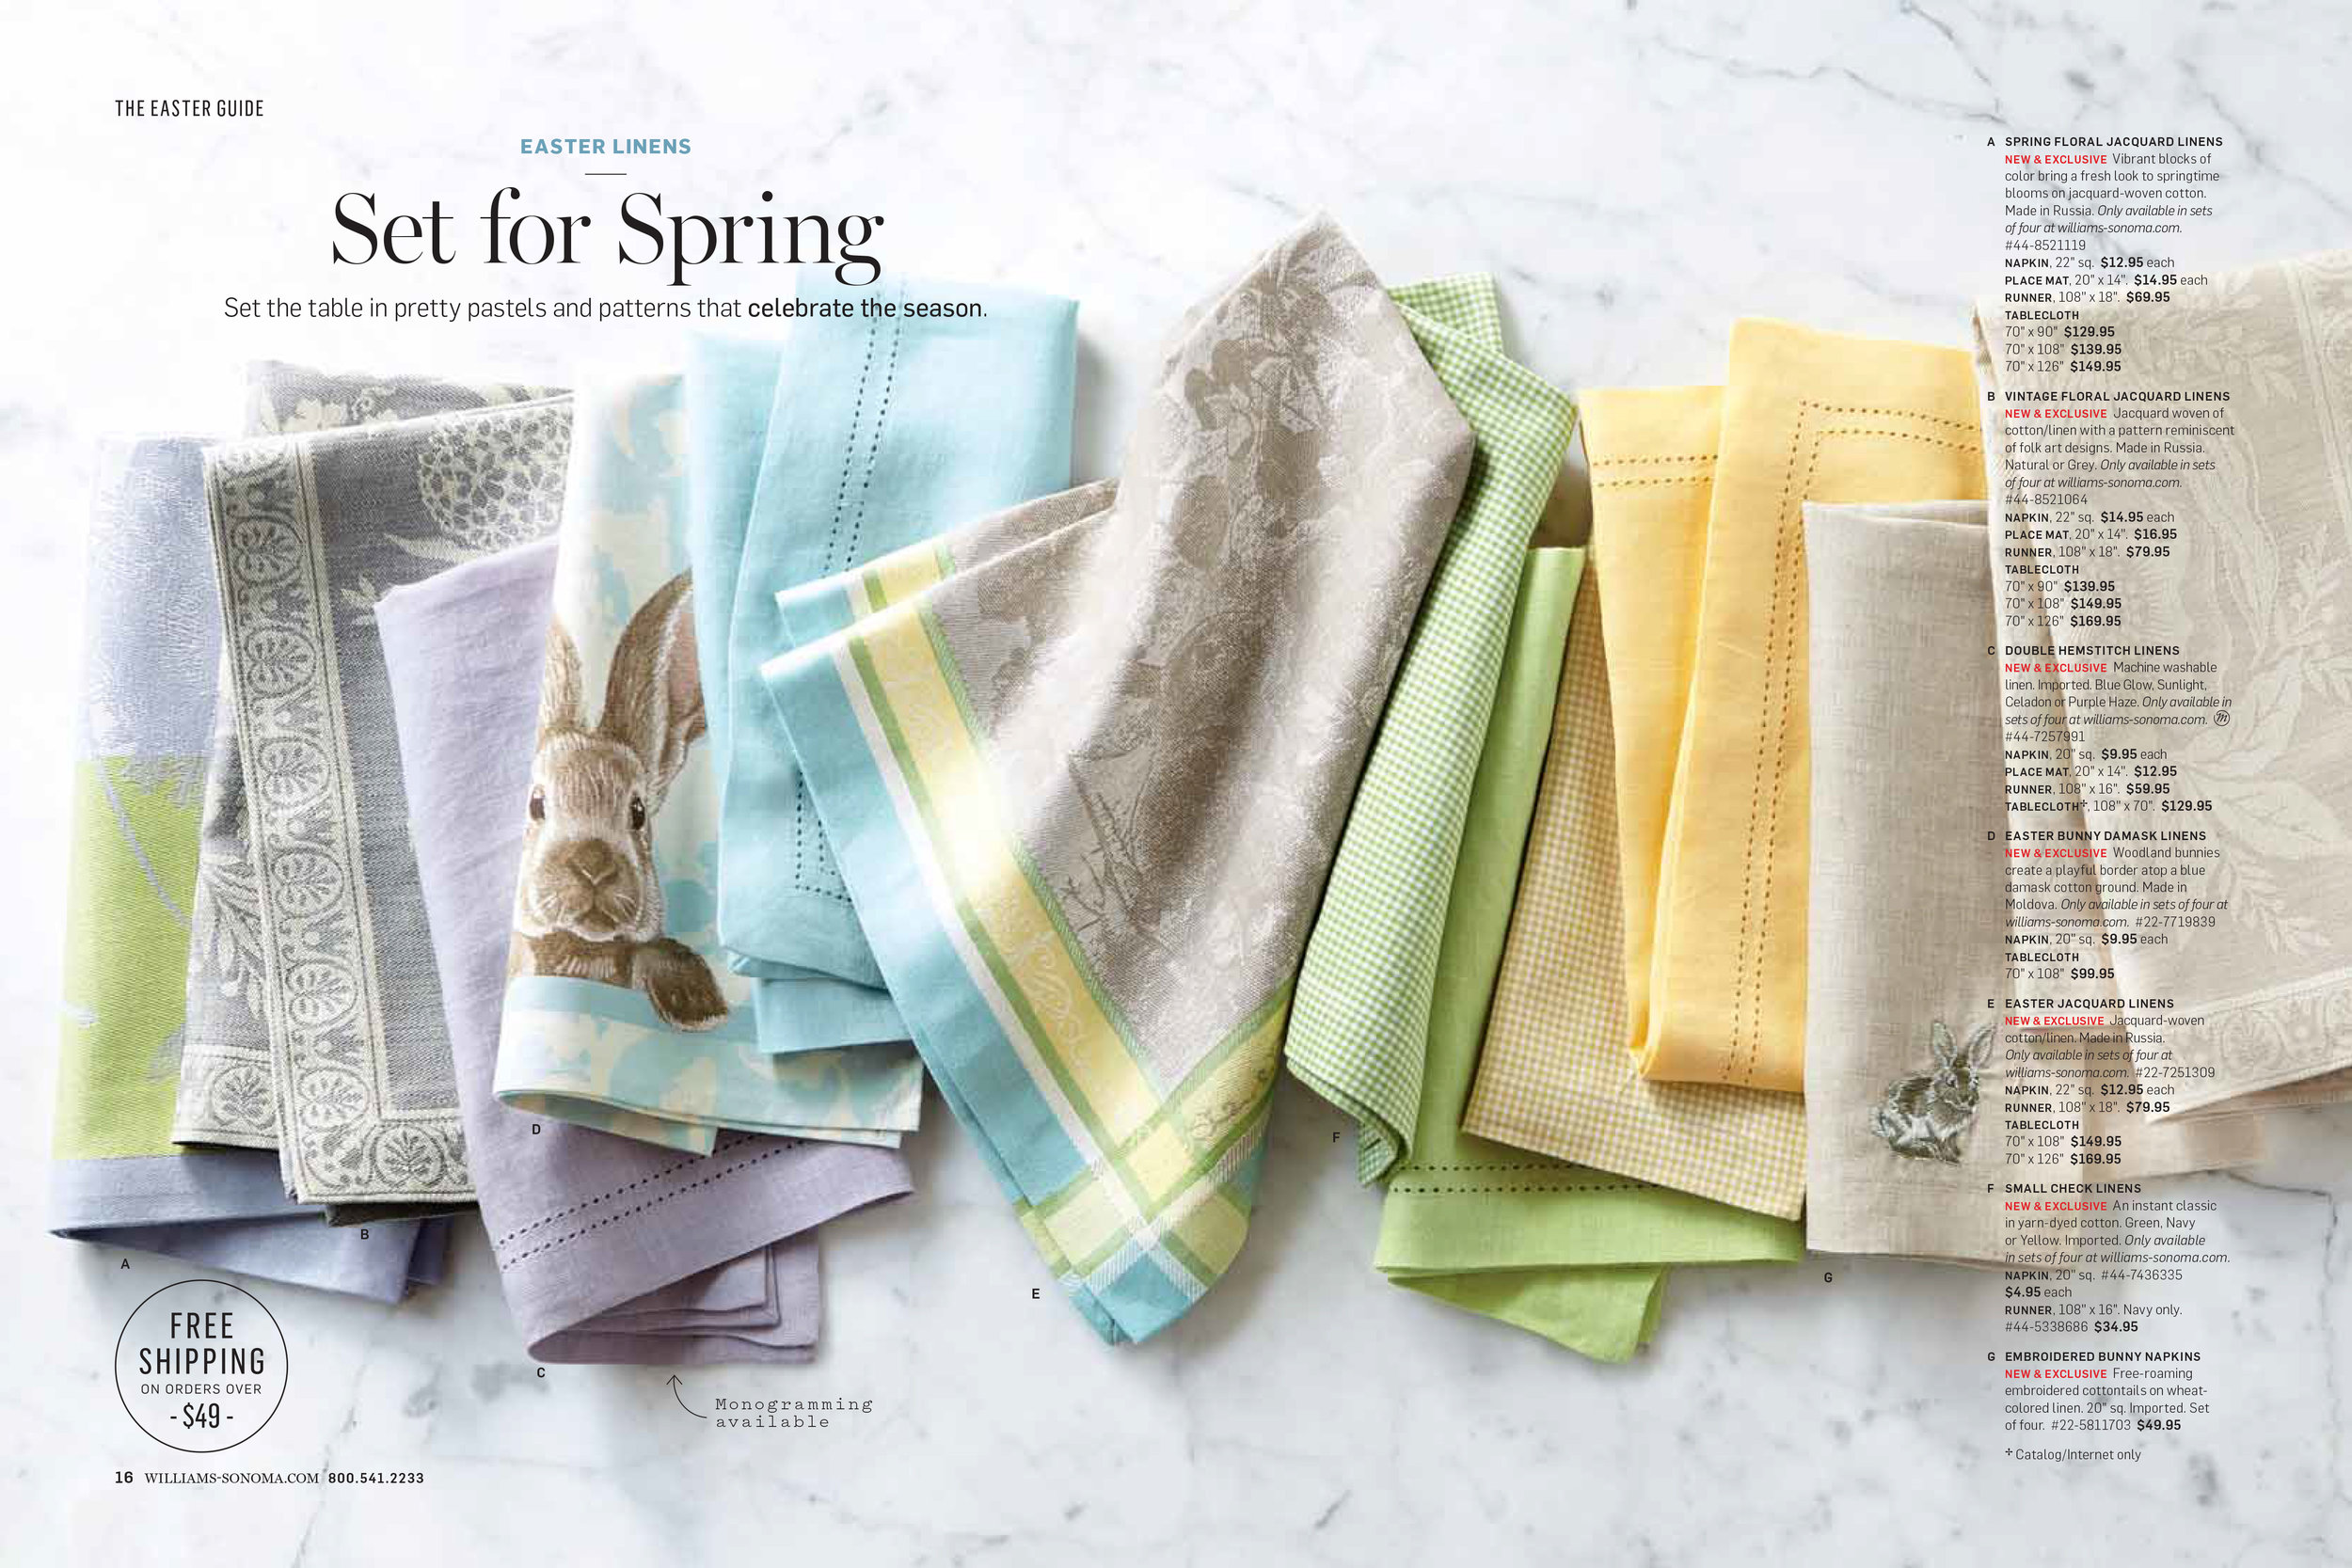 A16_A17_TABLETOP 101 LINENS WD3.jpg